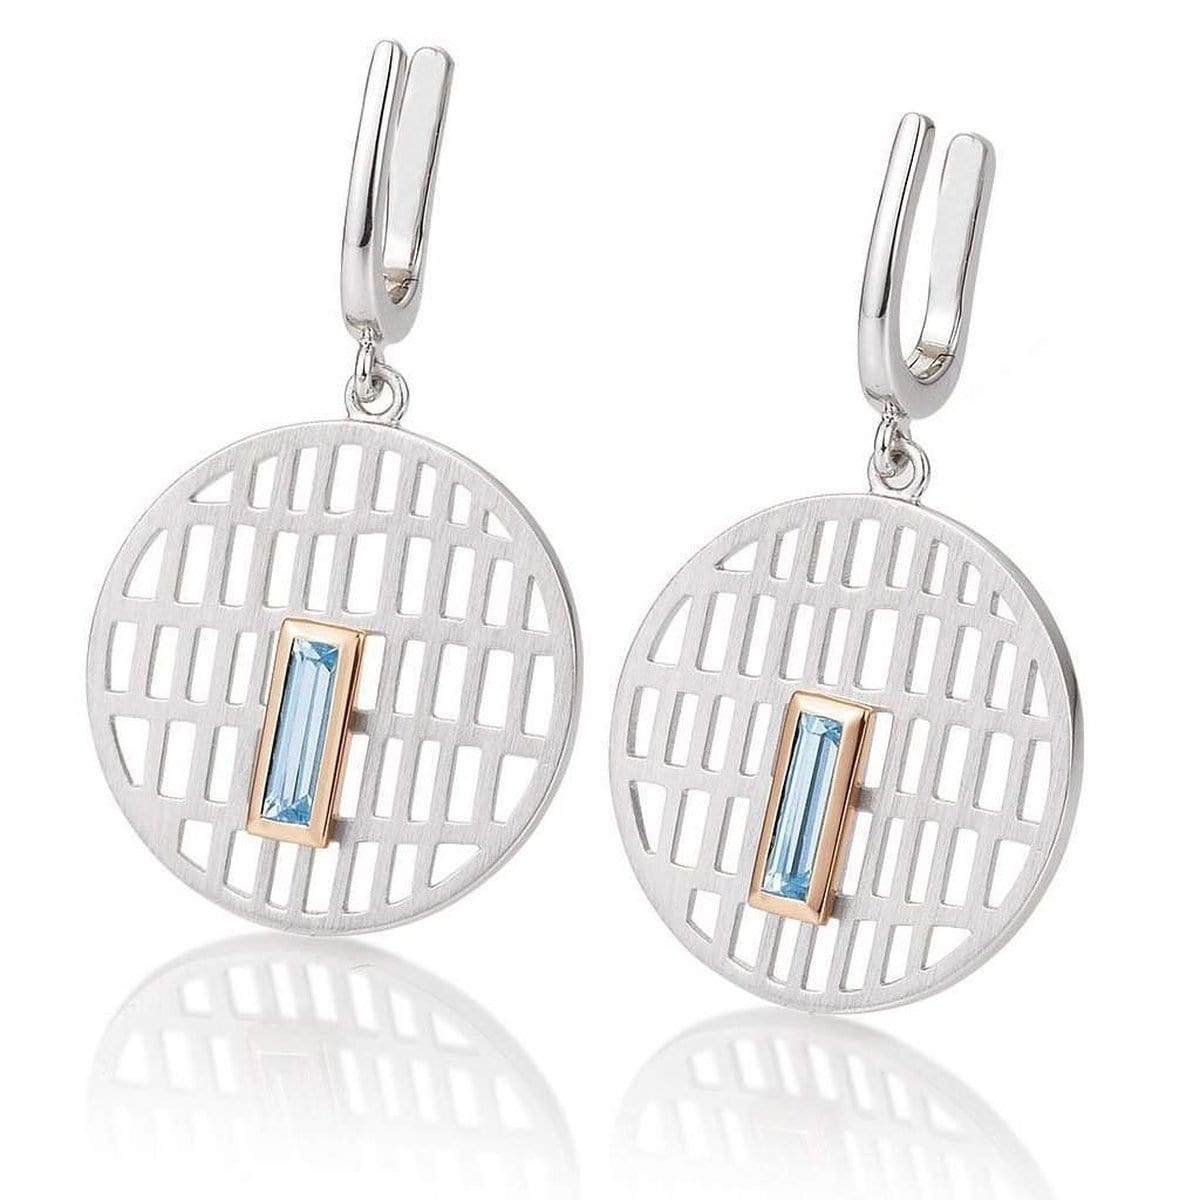 Rhodium Plated Sterling Silver Blue Topaz Earrings - 06/60722-Breuning-Renee Taylor Gallery